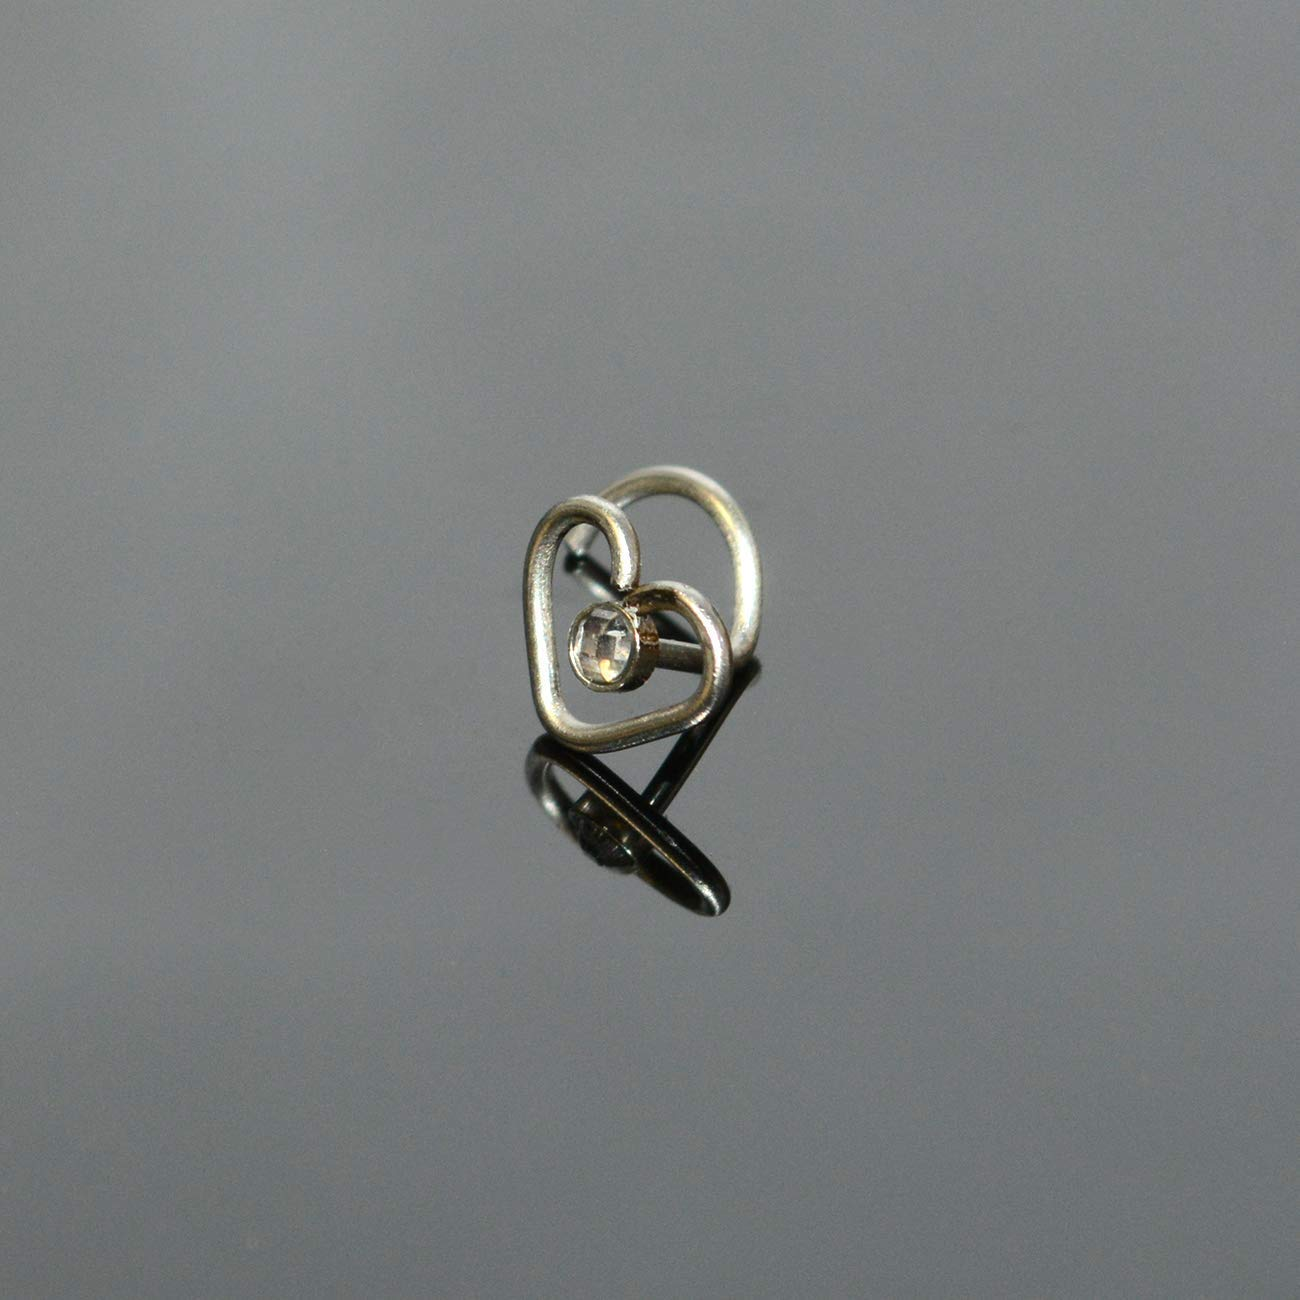 316L Nose Ring 18g Nose Piercing Ring with CZ Stone Nose Stud